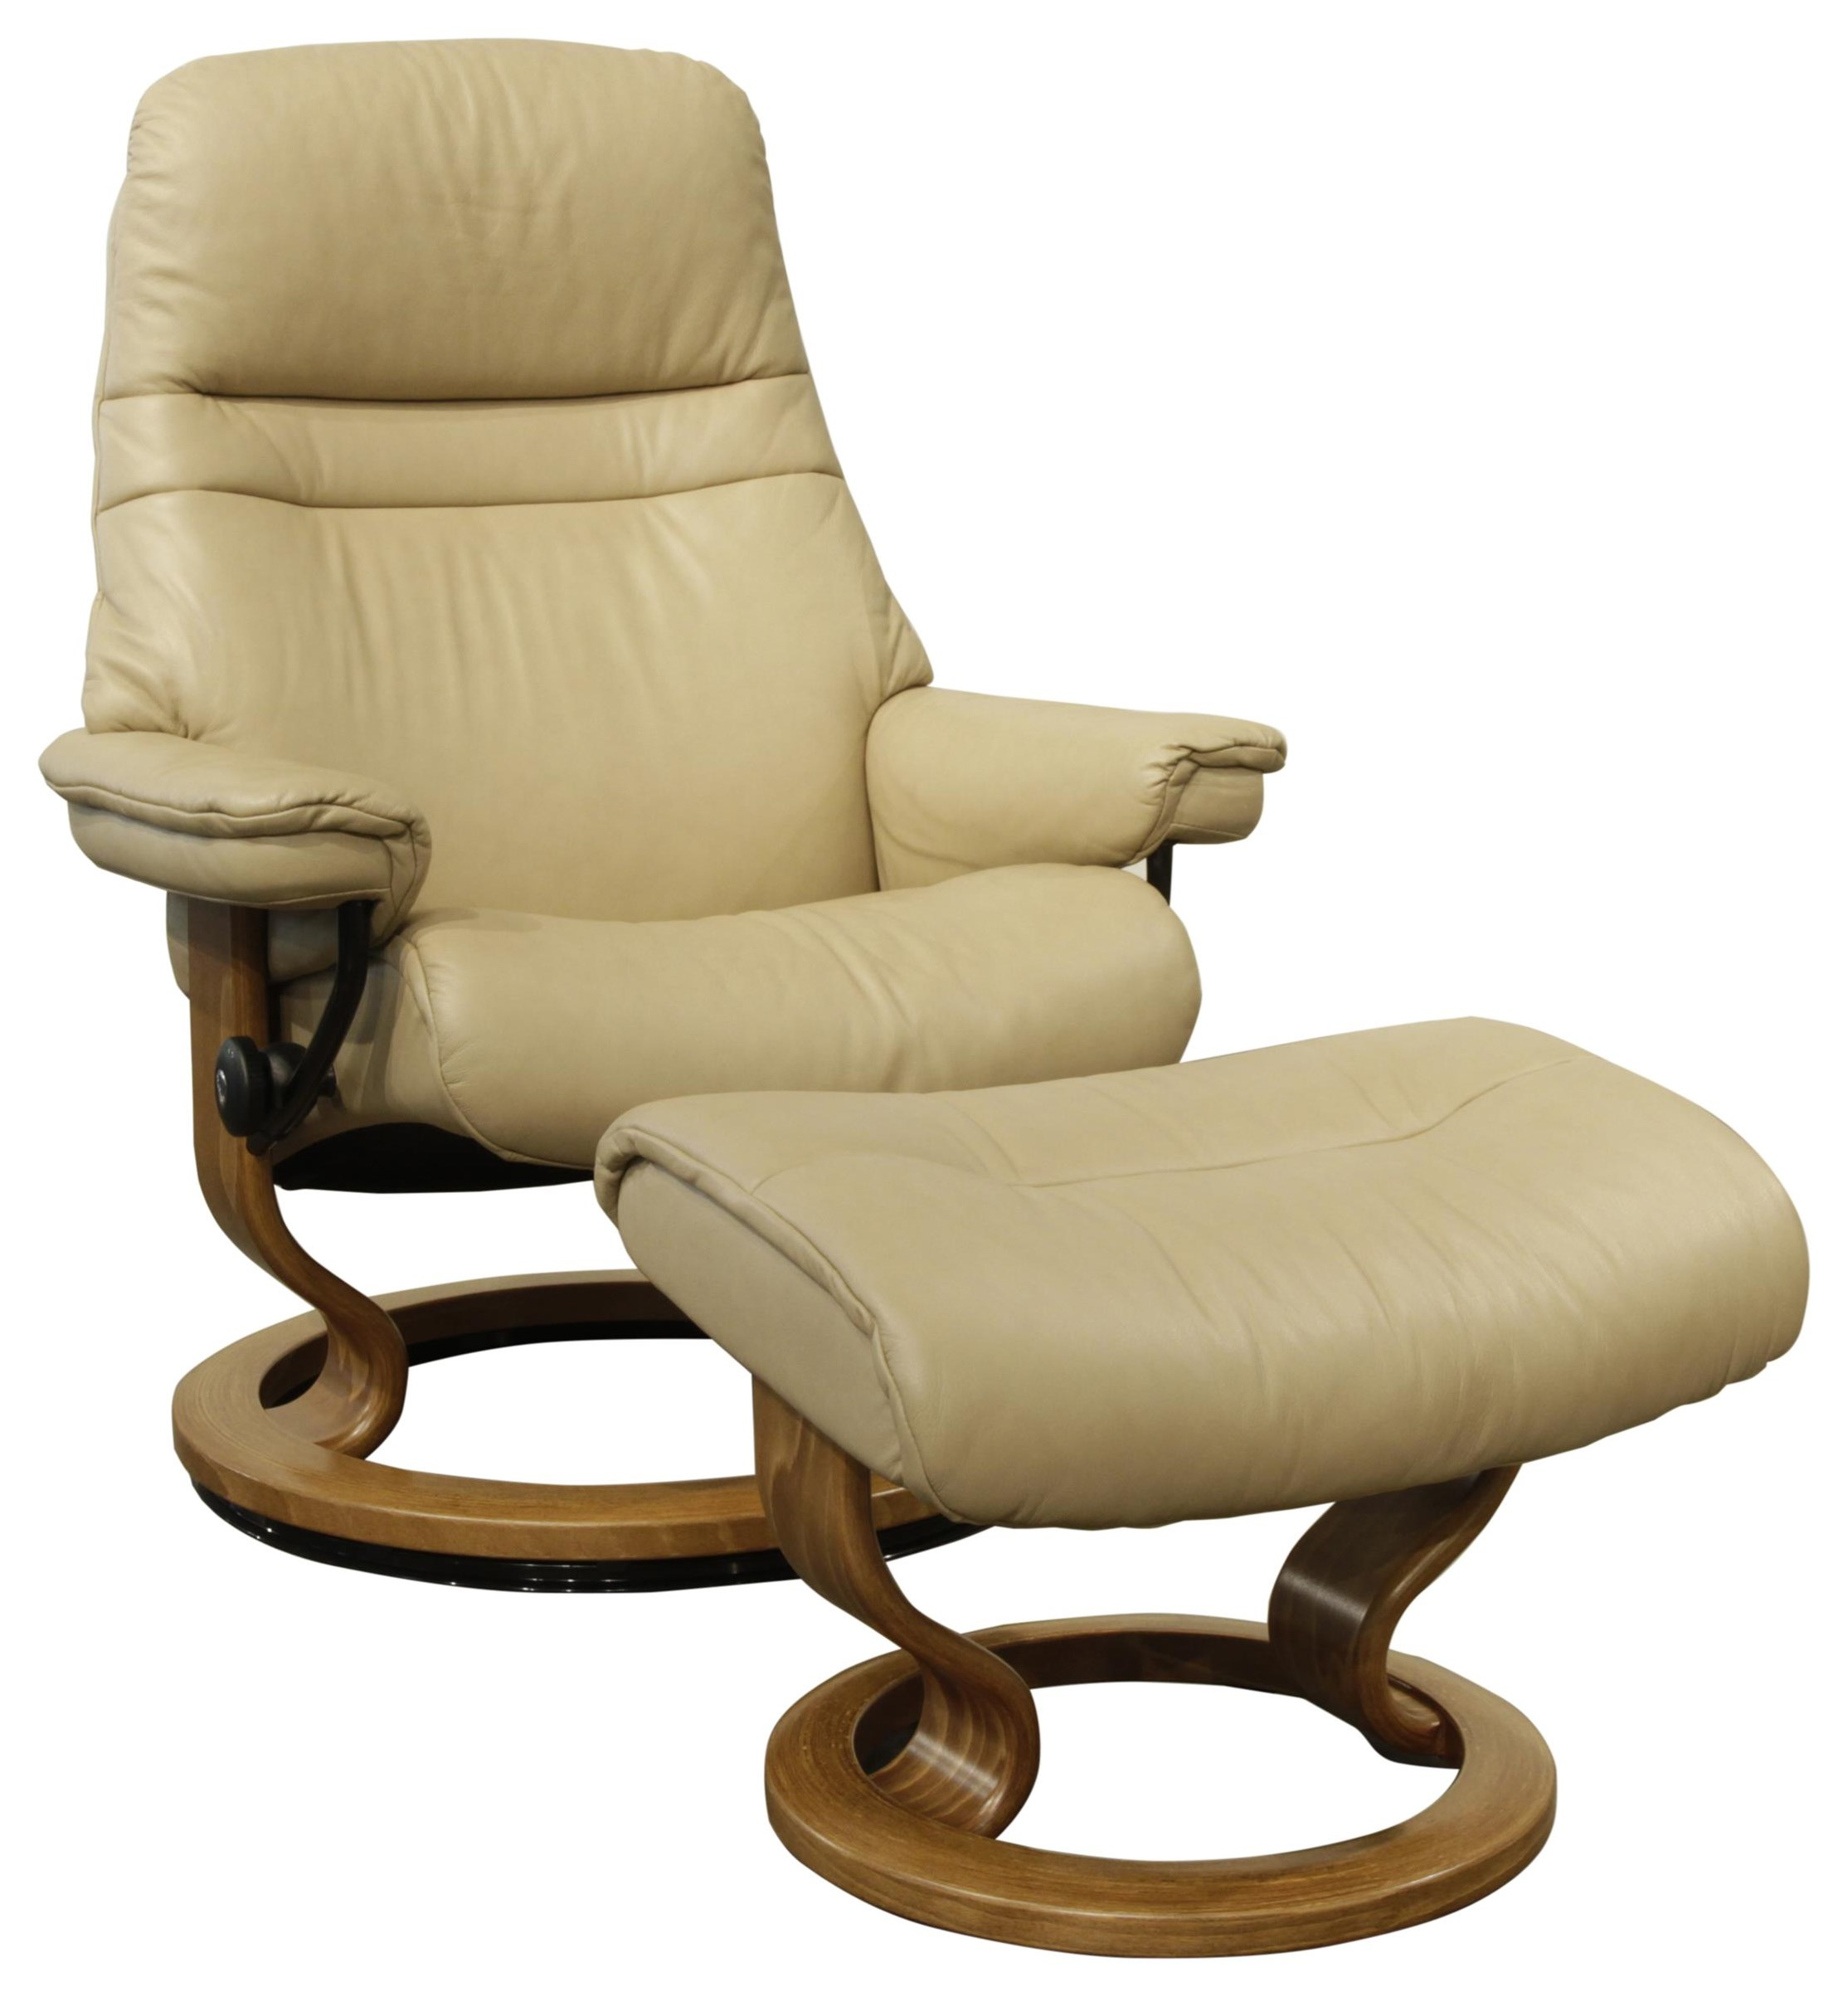 Small Chair With Ottoman: Stressless Sunrise Small Stressless Chair & Ottoman